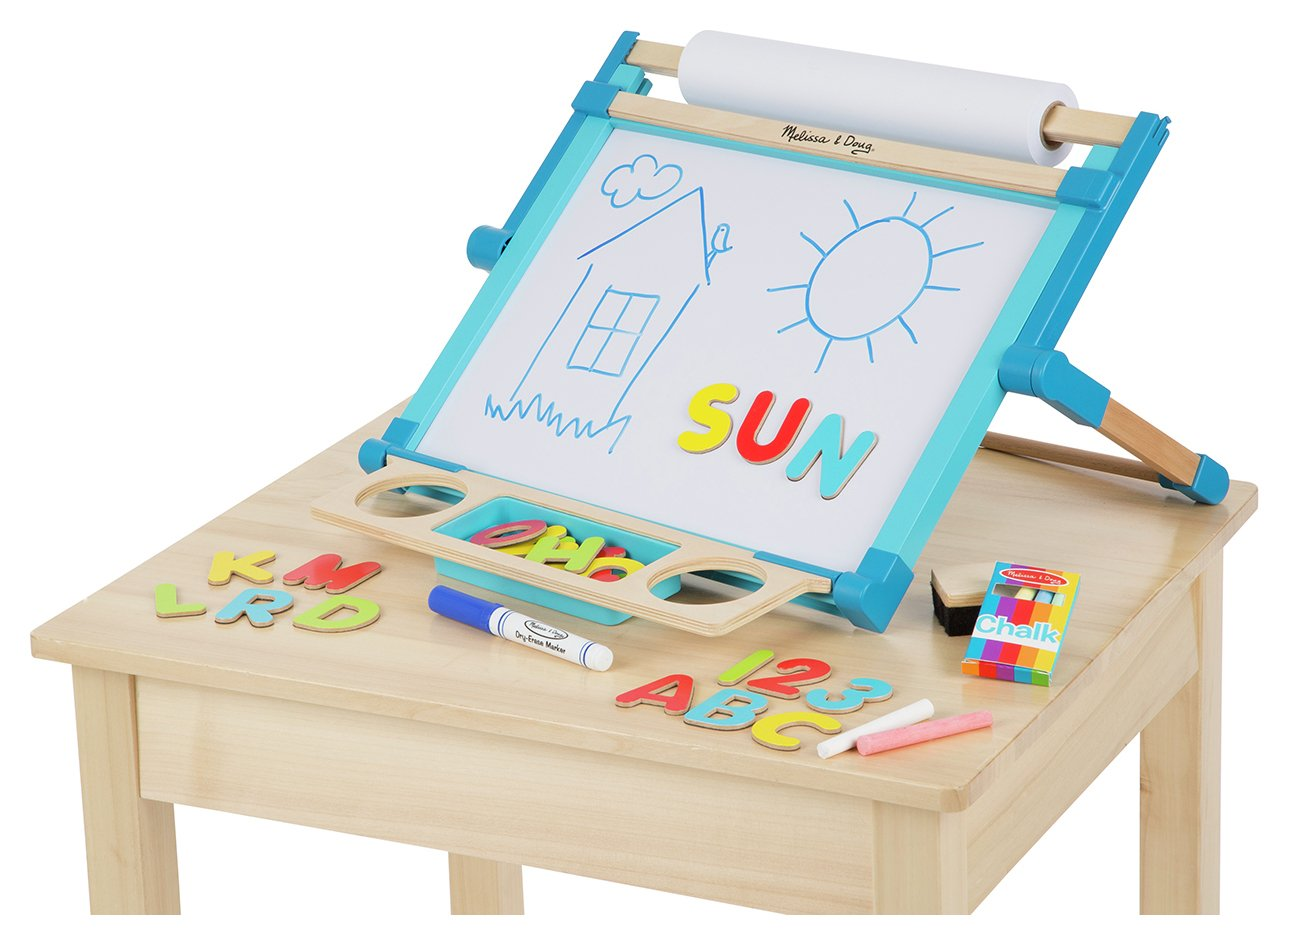 Wooden Double Sided Easel Pink Toys Compare And Save